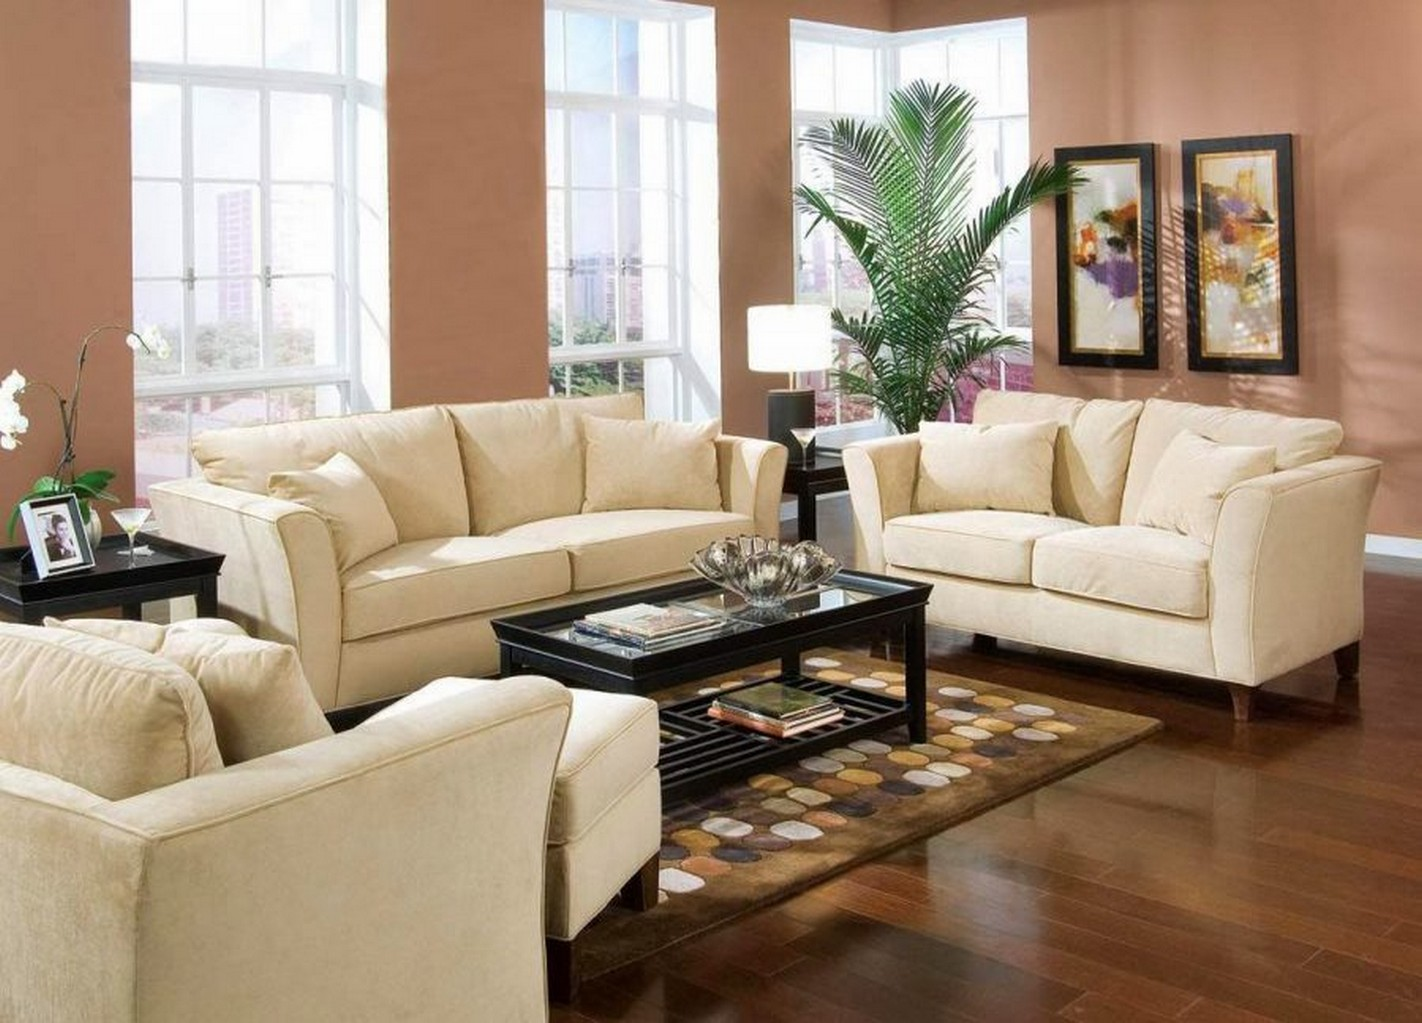 Small living room furniture ideas felish home project - Small living rooms ideas ...